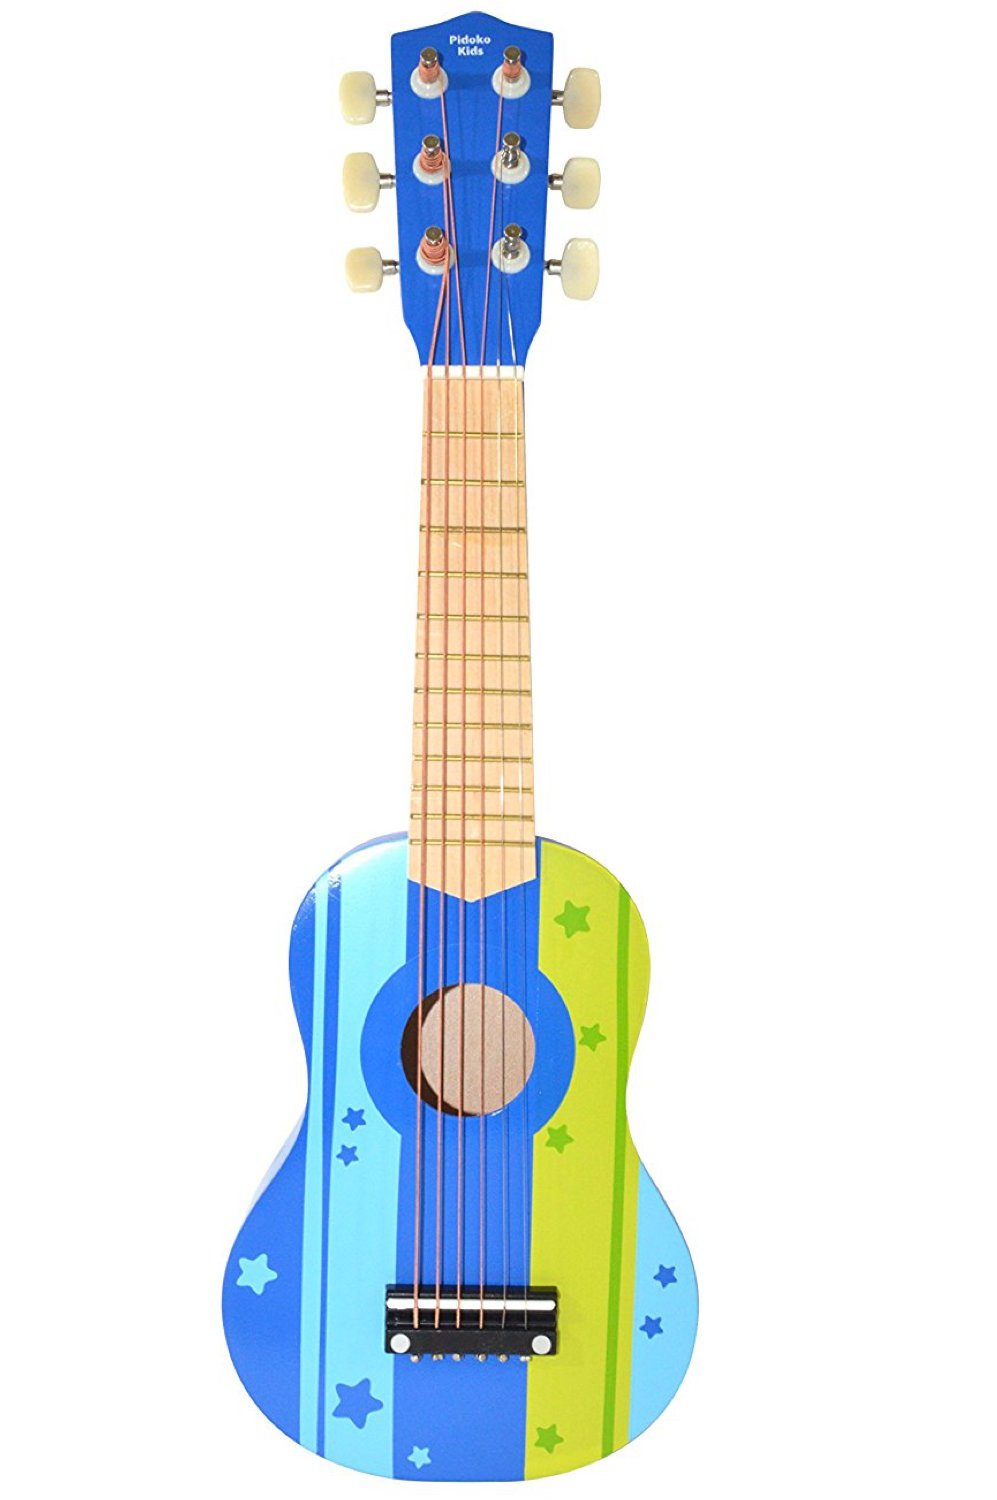 Pidoko Kids Wooden Ukulele Toy Guitar Instrument, Blue - Musical Toys for Toddlers Boys & Girls Strings